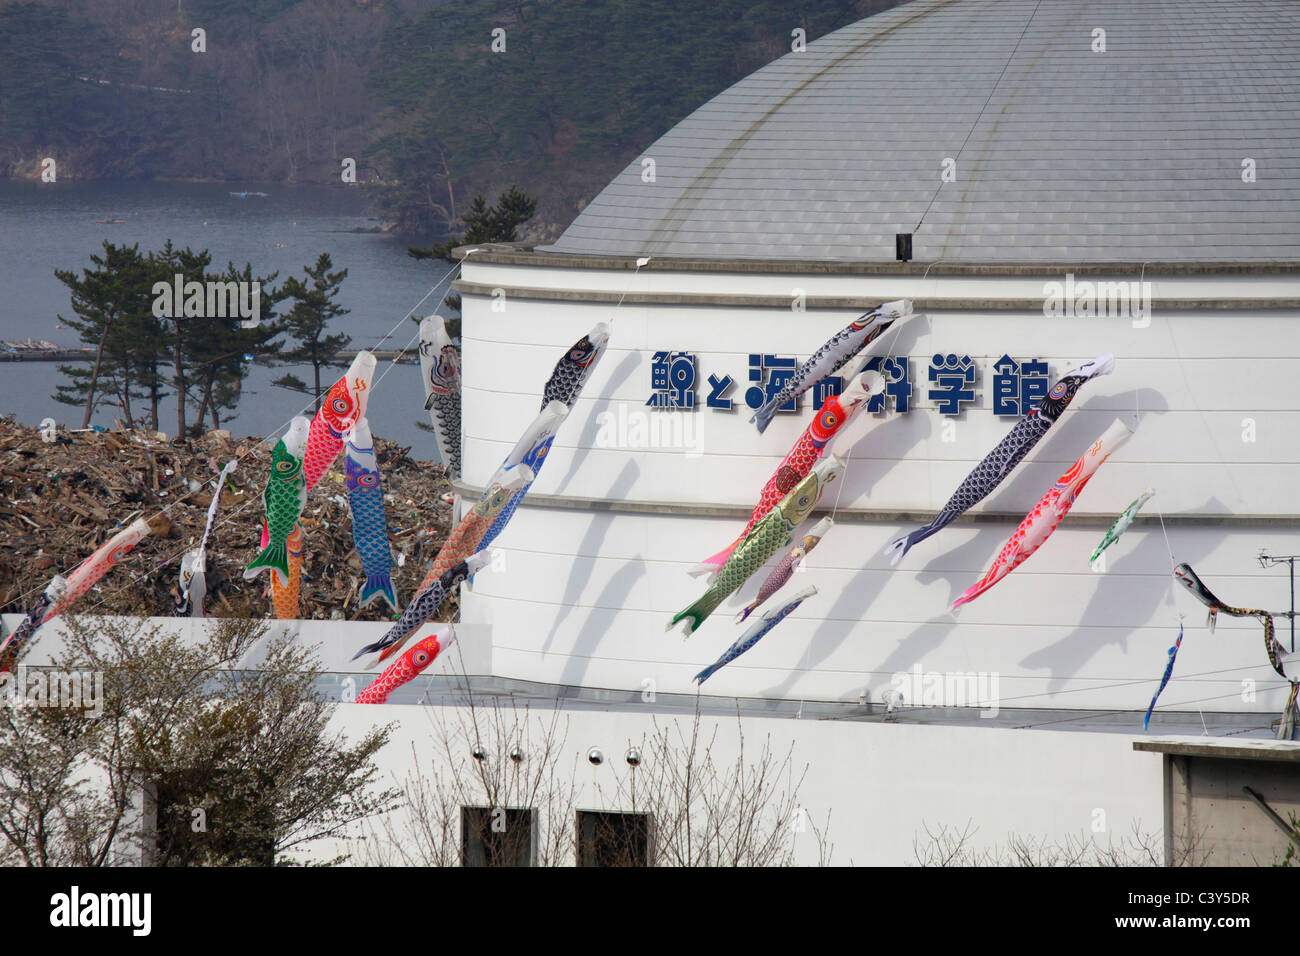 Carp streamers flying at the Whale Museum flying in Yamada-machi town Iwate Japan - Stock Image